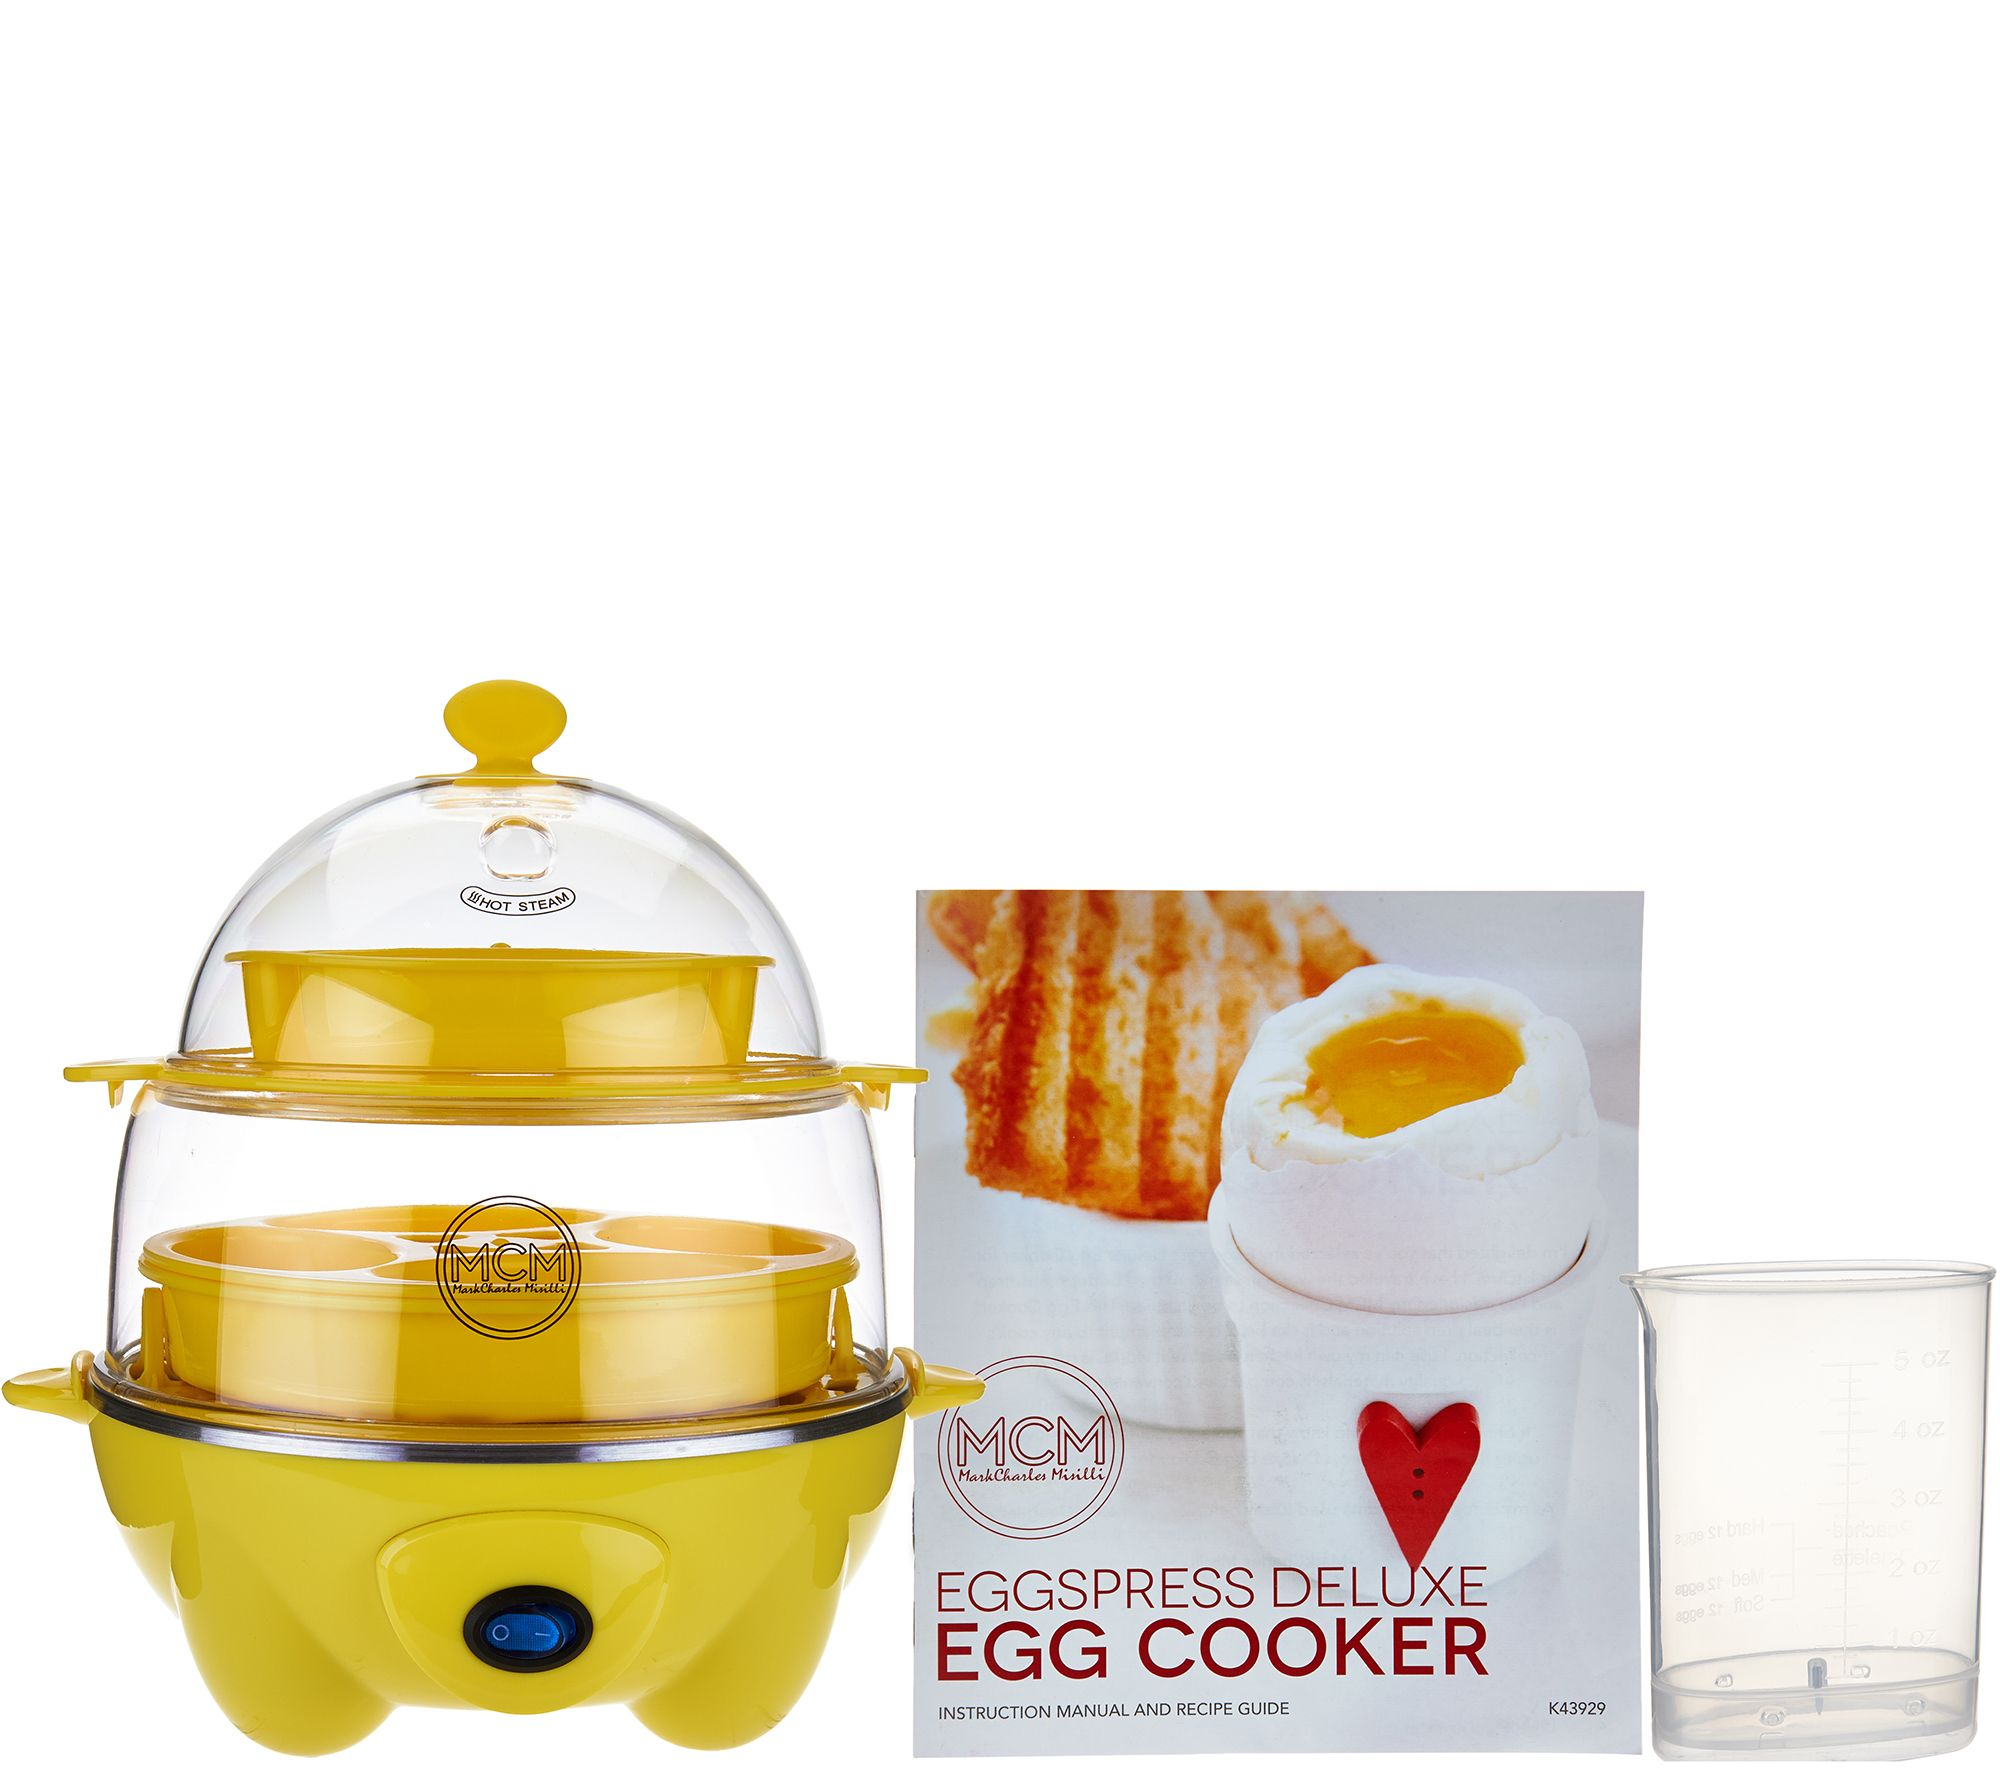 Qvc Card Making Ideas Part - 23: Eggspress Deluxe Egg Cooker W/ Recipe Book - Page 1 U2014 QVC.com